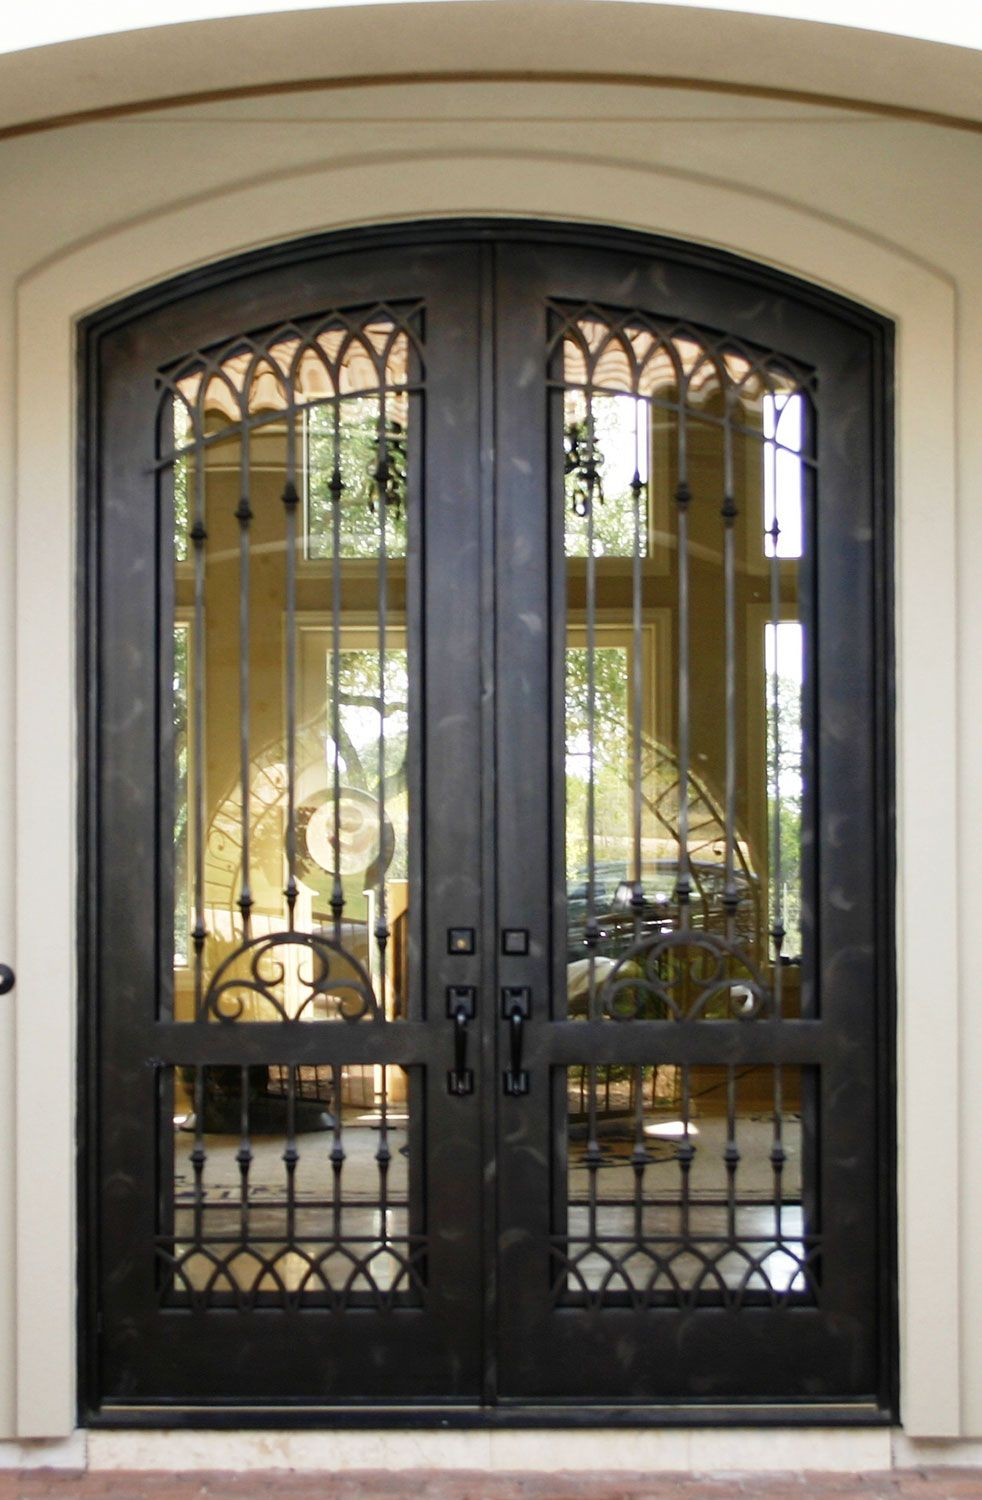 Cantera Doors Provides Hand Forged Custom Made Iron Staircase Amp Balcony Railings For Your Wrought Iron Doors Iron Doors Wrought Iron Doors Front Entrances